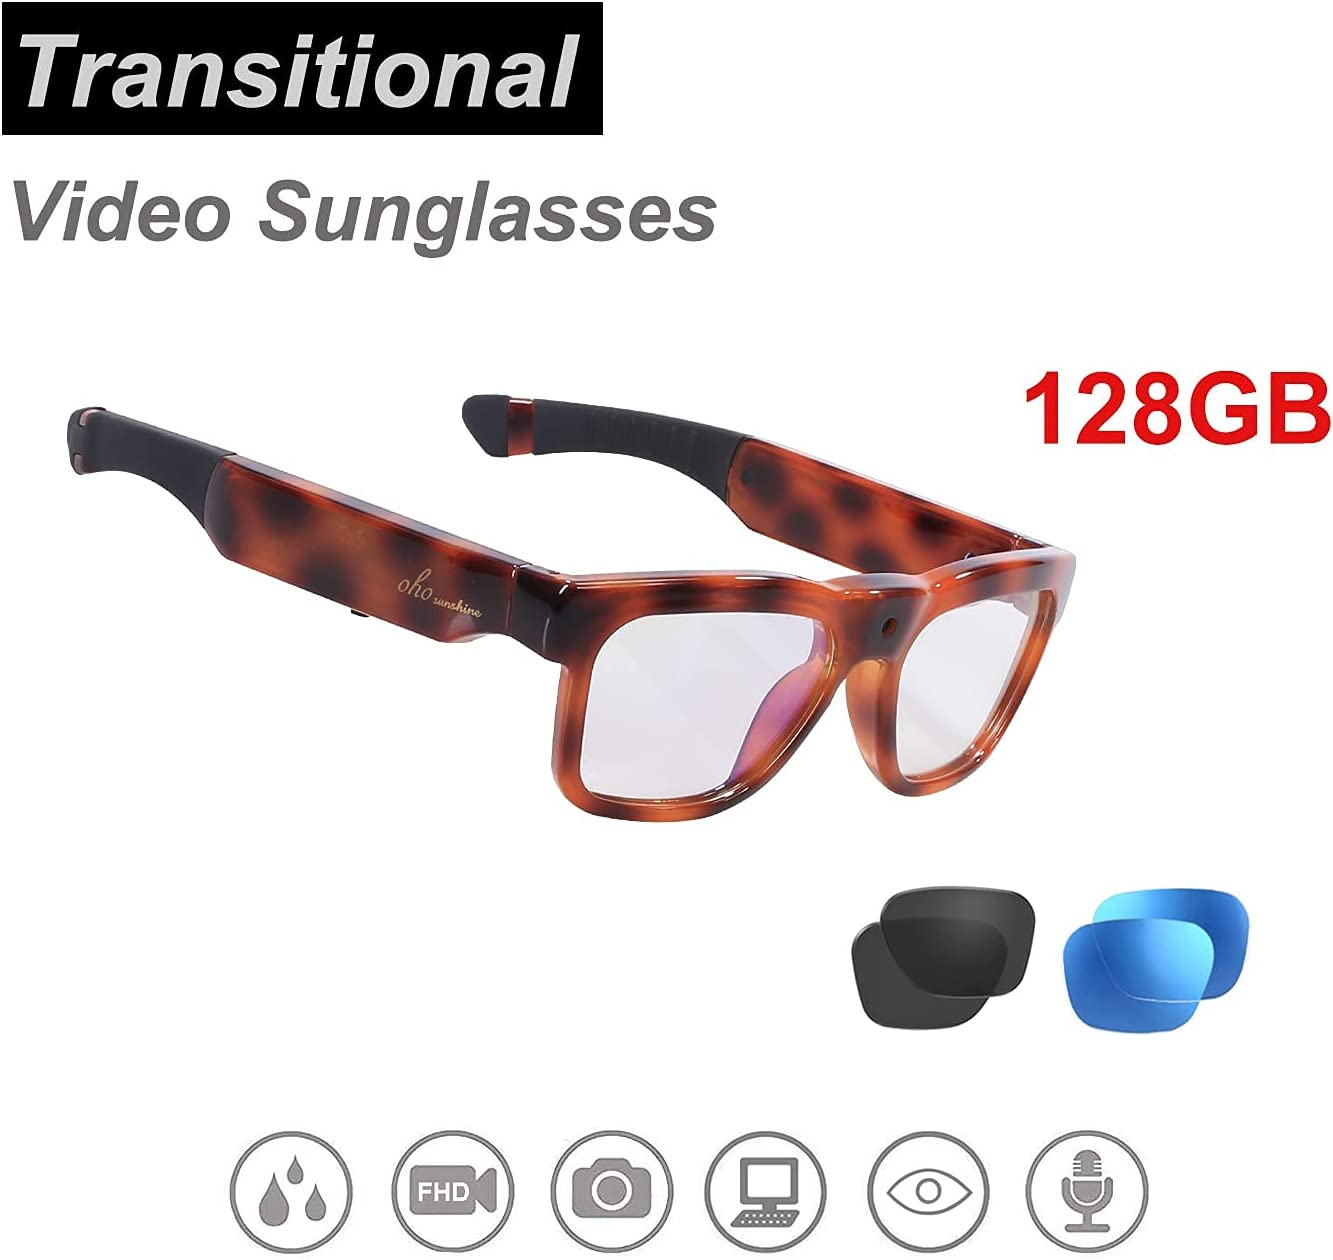 OhO Mini Camera Sunglasses, Water Resistance Ultra Full HD Camera with Built-in 128GB Memory and Blue Light Blocking and Transitional Safety Lens for Indoor and Outdoor Use